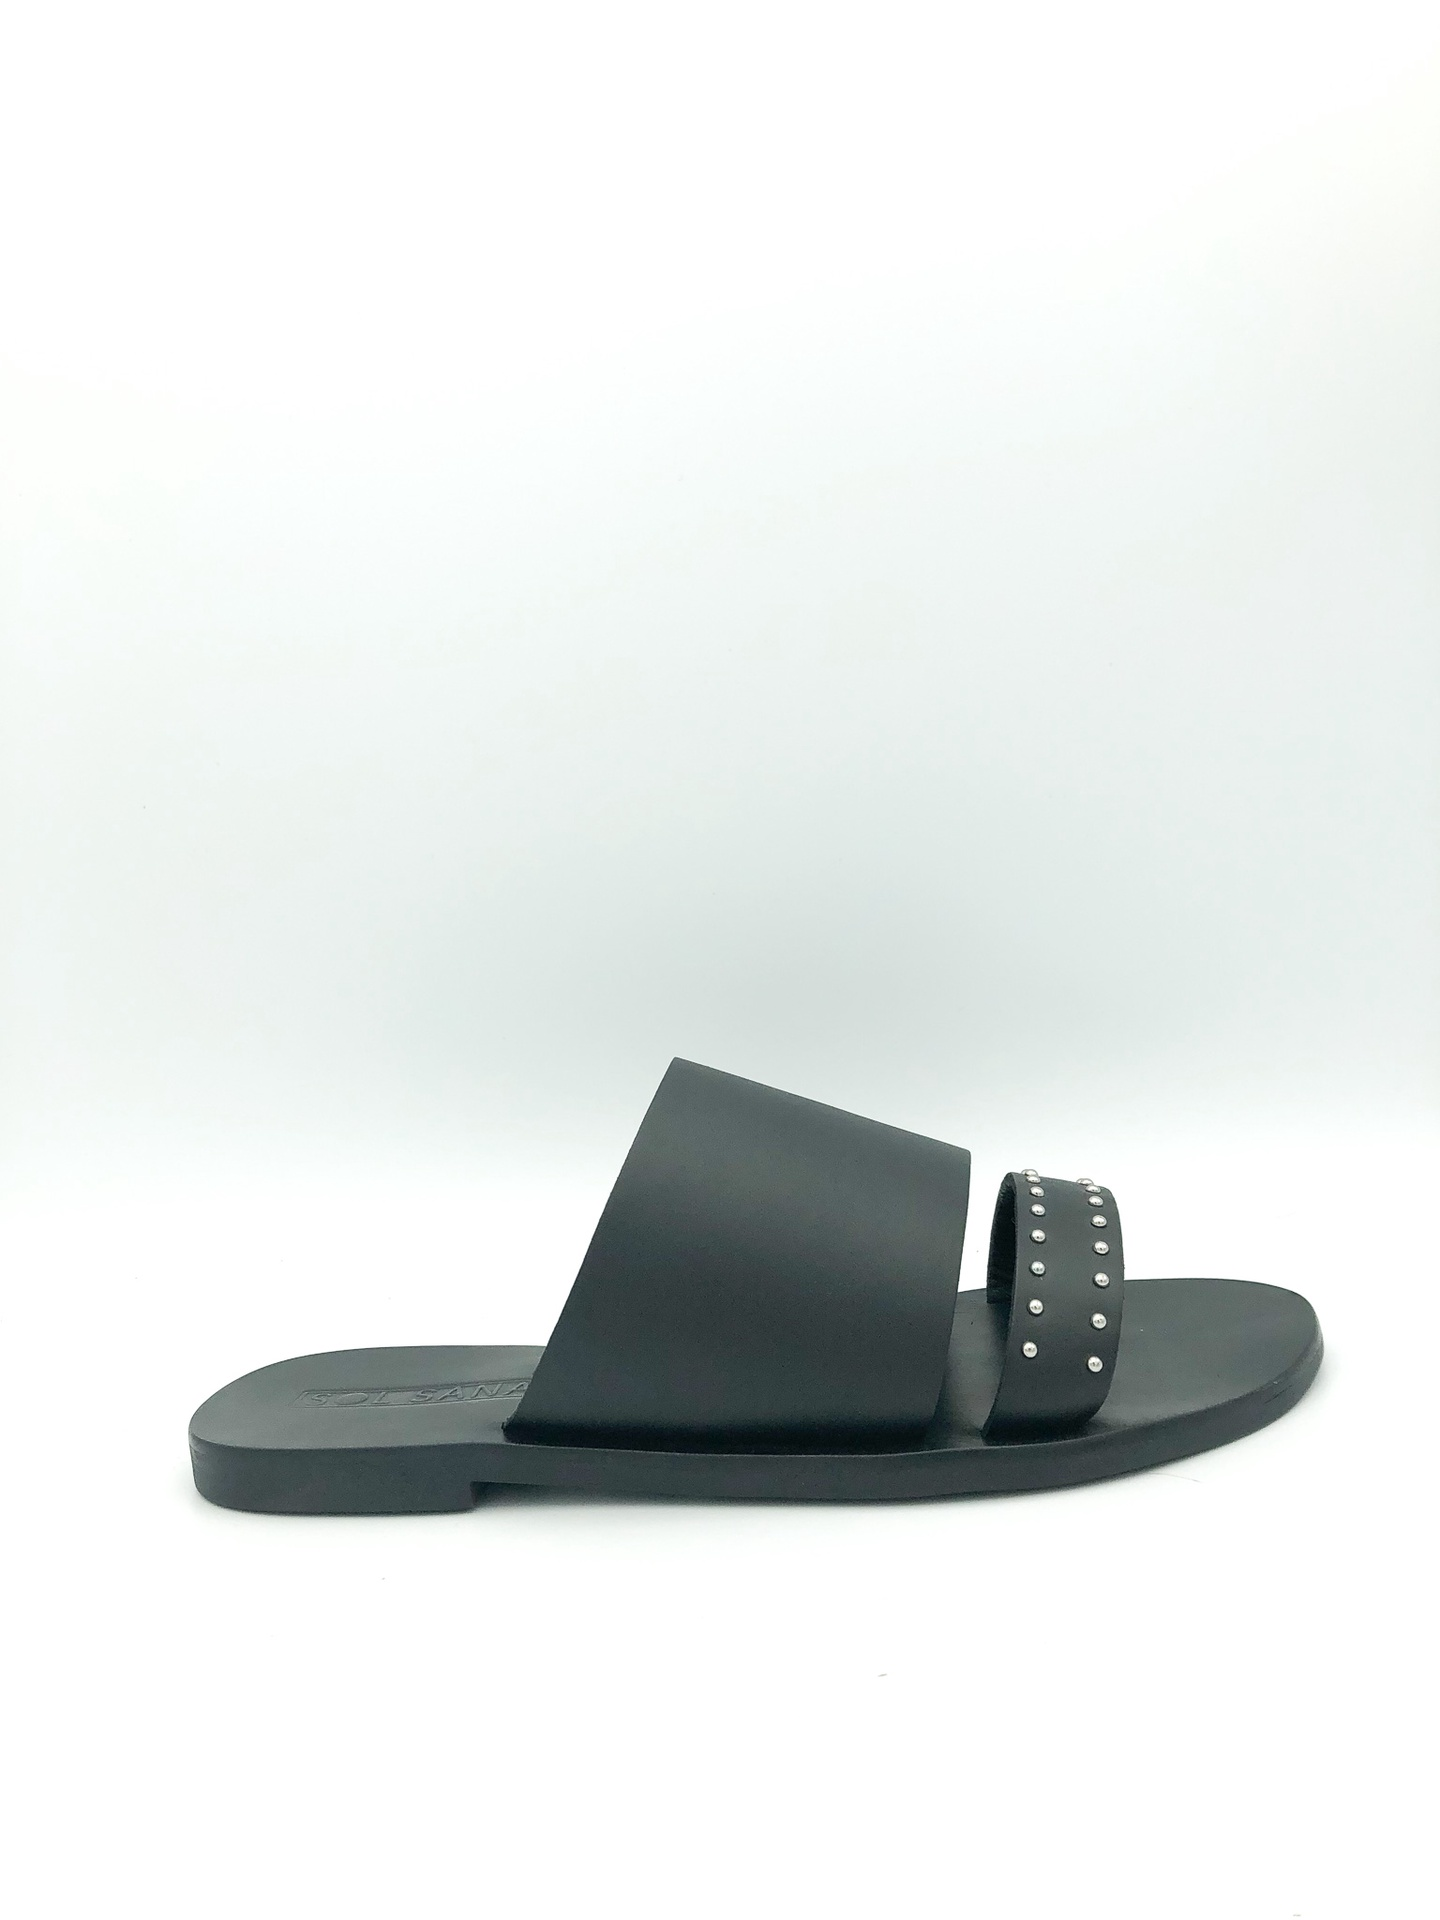 SOL SANA - JOBE SLIDE IN BLACK STUD